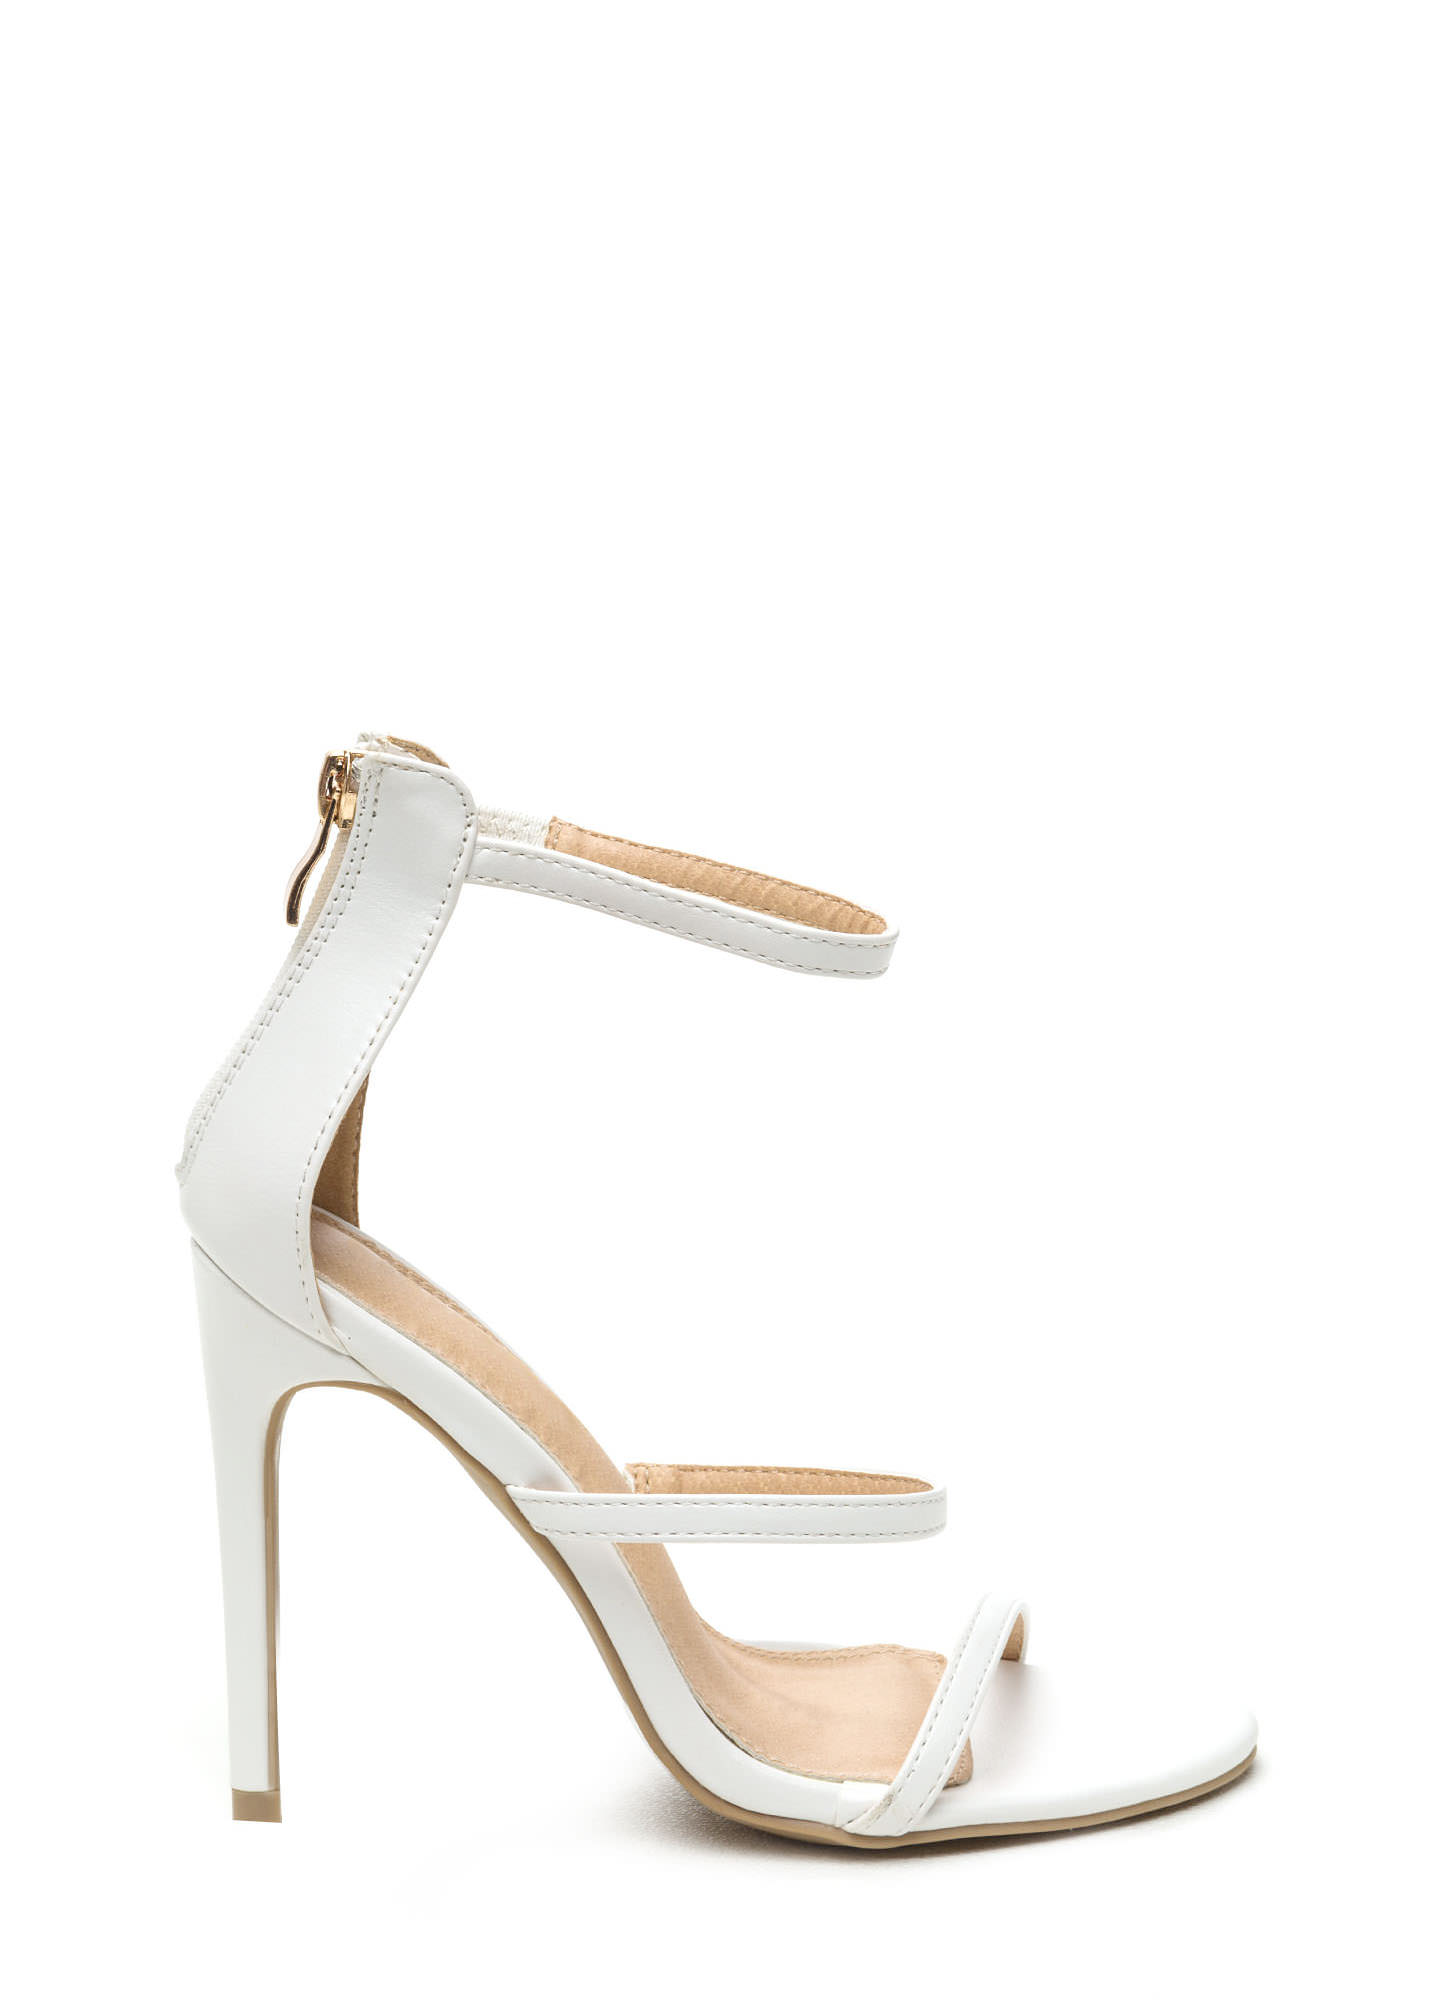 White Heels - Ivory &amp White Pumps Strappy Heels &amp More